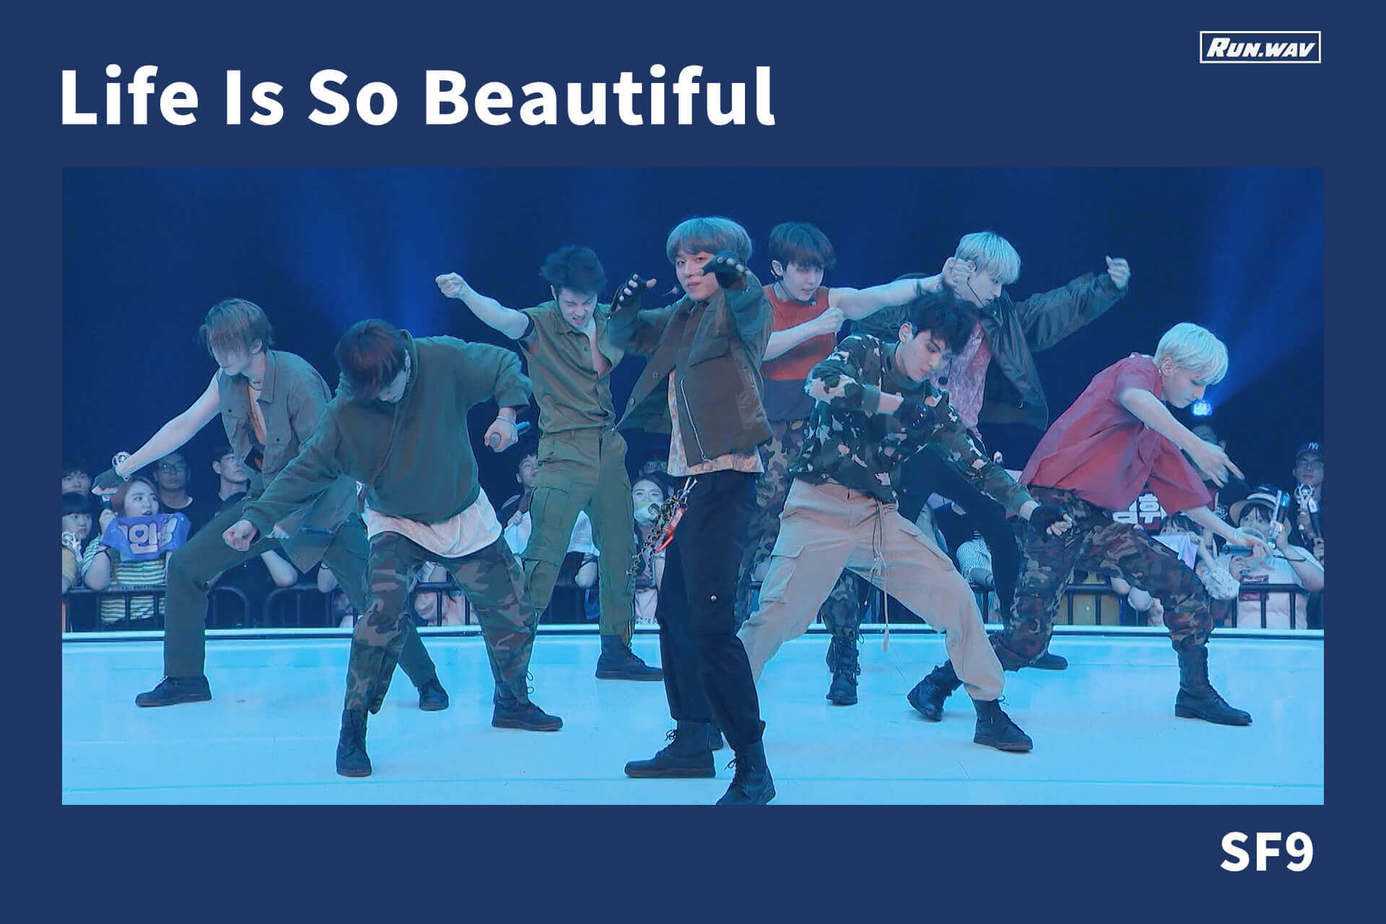 Life Is So Beautiful|SF9